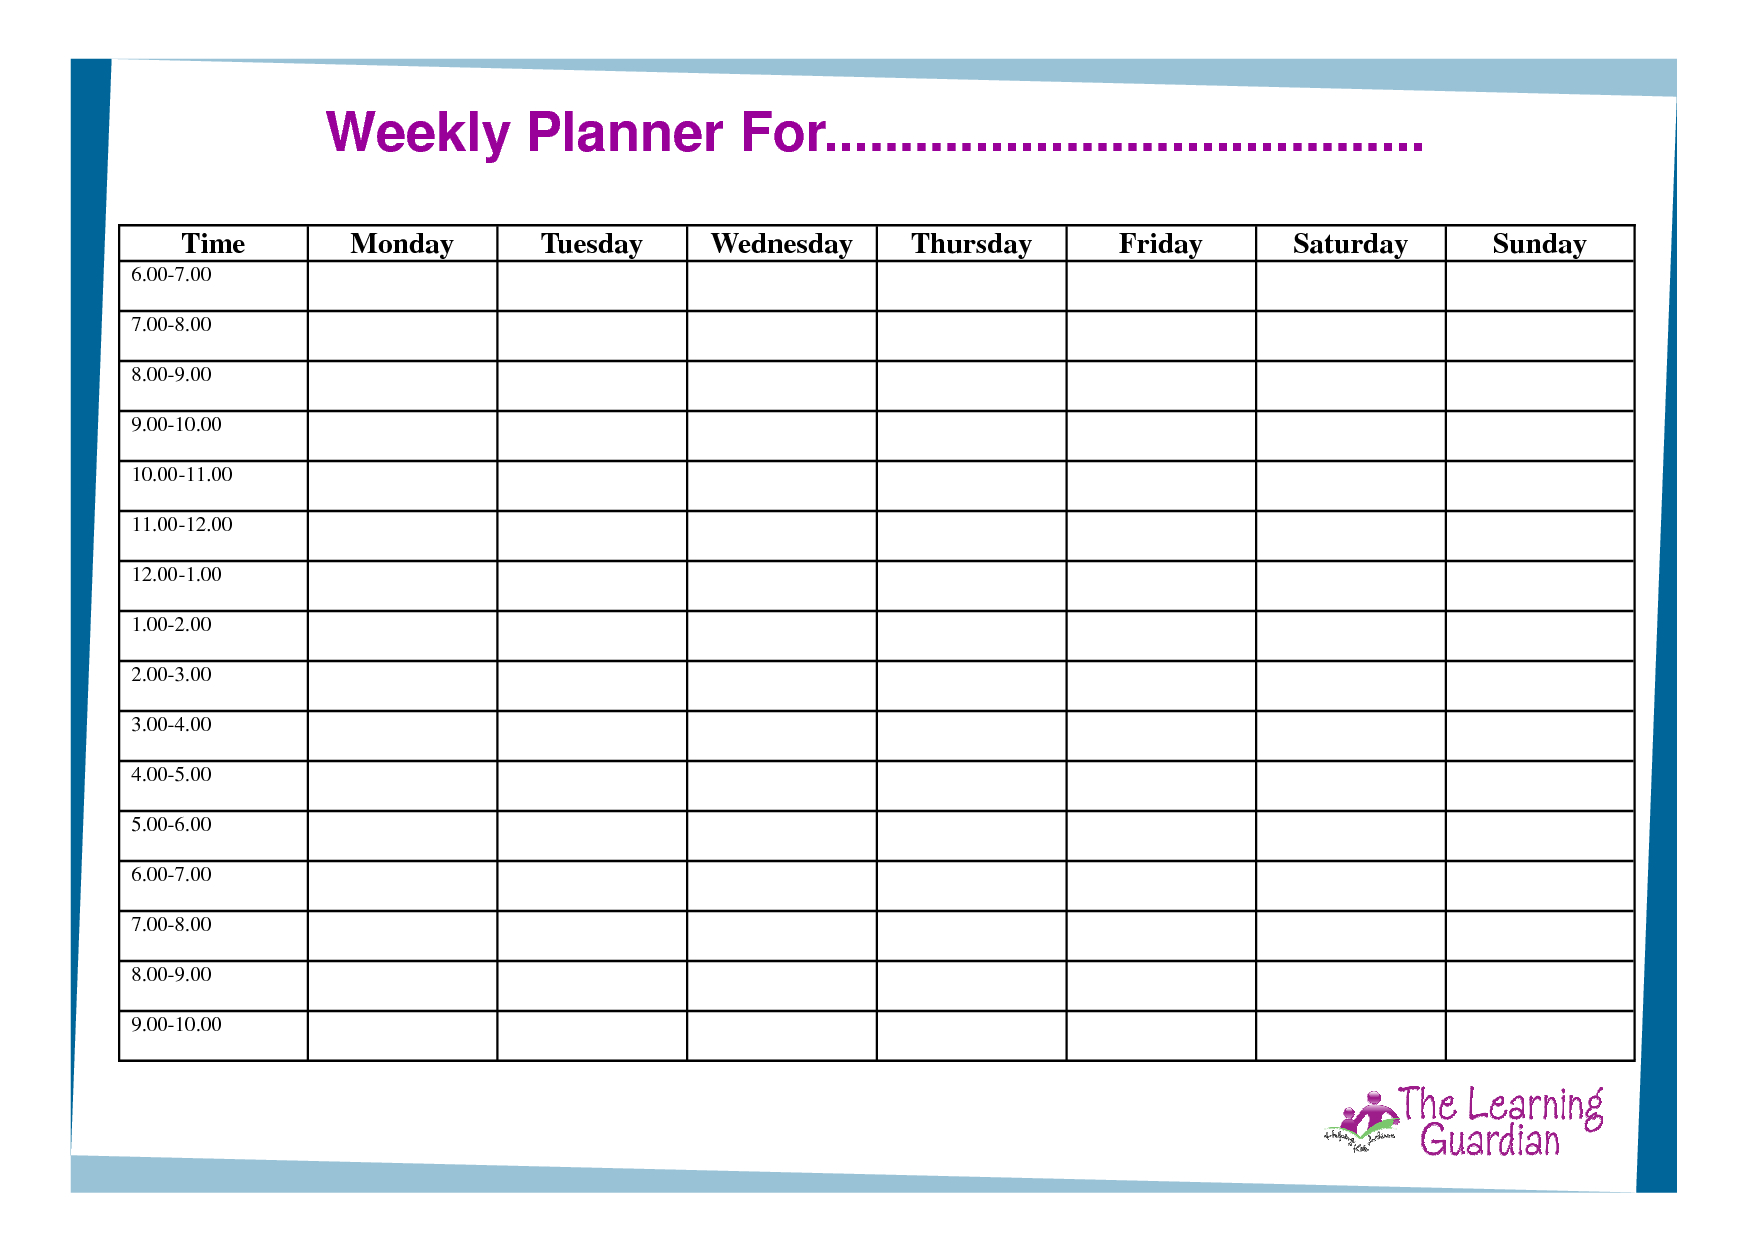 Free Printable Weekly Calendar Templates | Weekly Planner For Time intended for Template Monday Through Friday Calendar